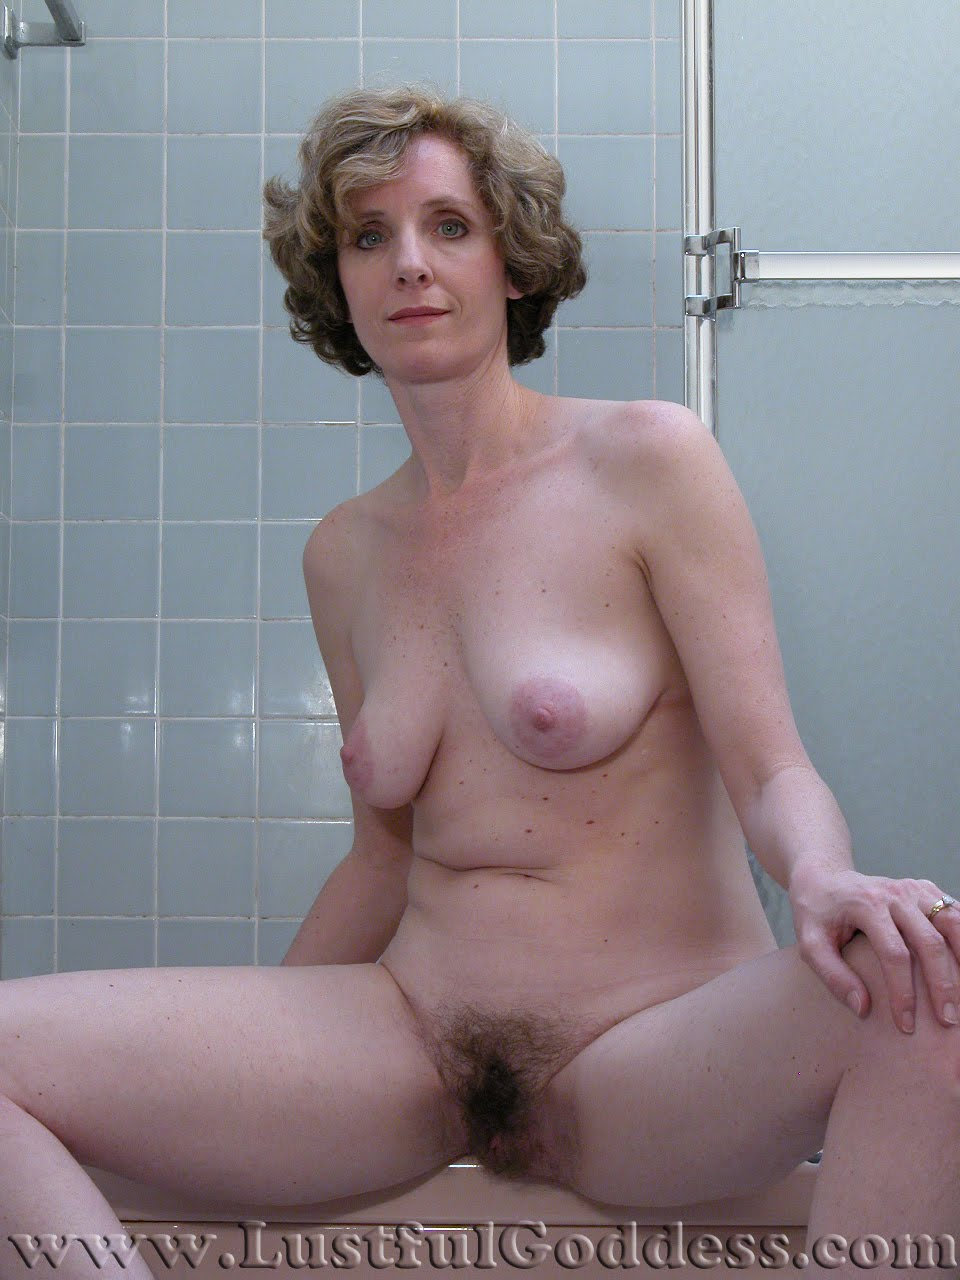 Remarkable, slut load mrs starr for